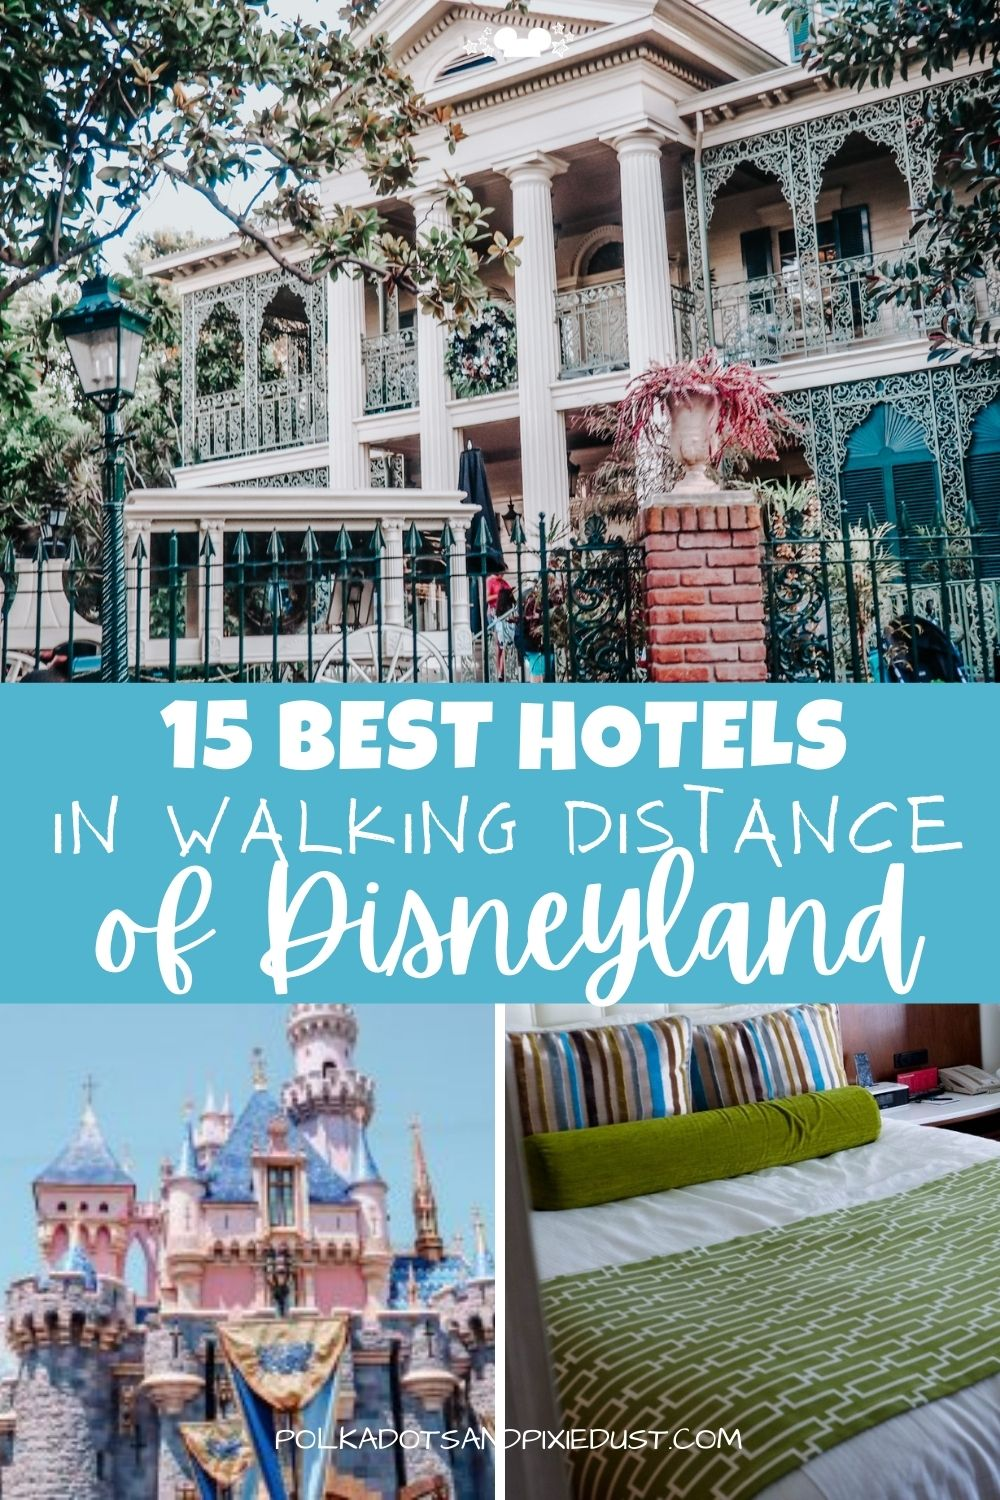 Disneyland Hotels that are in walking distance of the parks! All less than 15 minutes, providing a wide array of amenities. Check out all our favorite Disneyland hotels. #disneyresorts #disneylandvacation #polkadotpixies